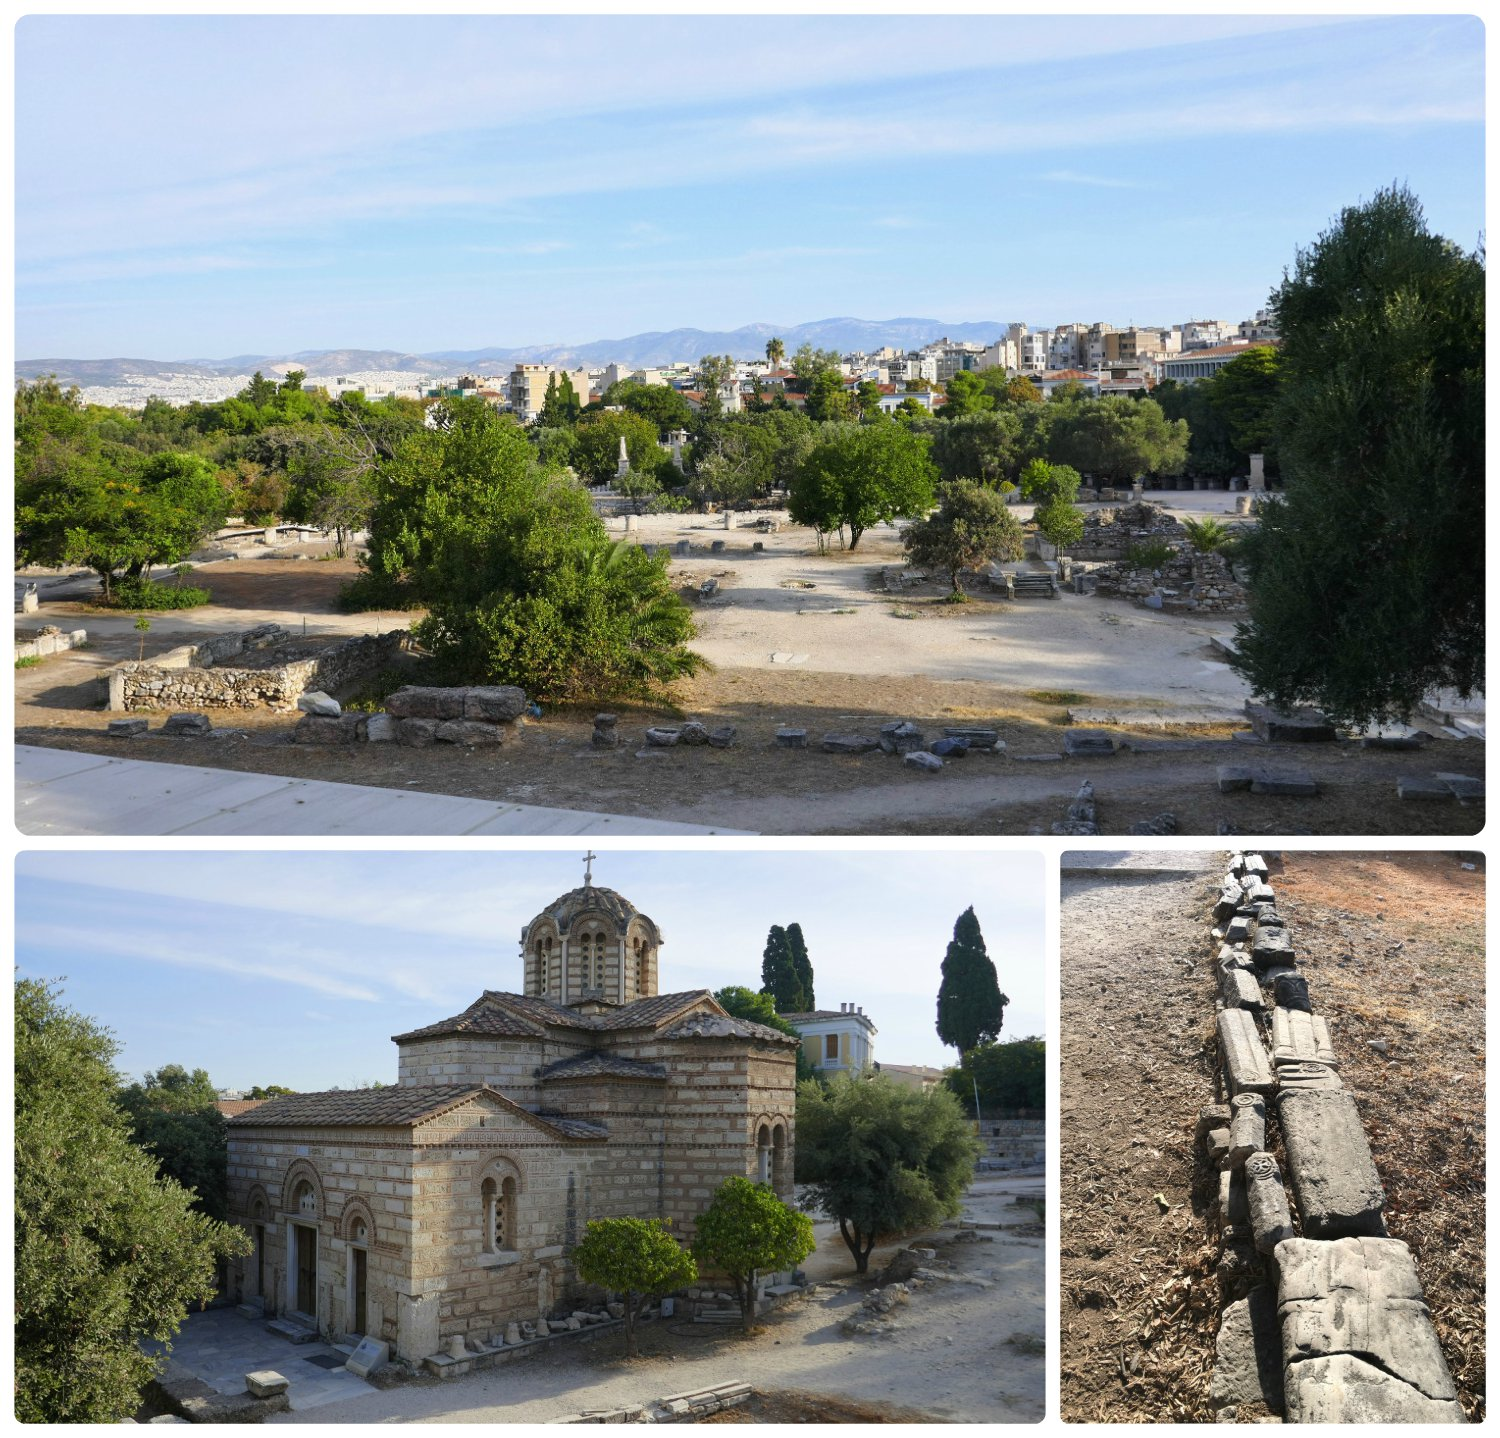 There are many ruins within the Ancient Agora of Athens. Clockwise (from the top): looking out over the grounds of the Ancient Agora of Athens, the remnants of a stone wall, Church of the Holy Apostles.